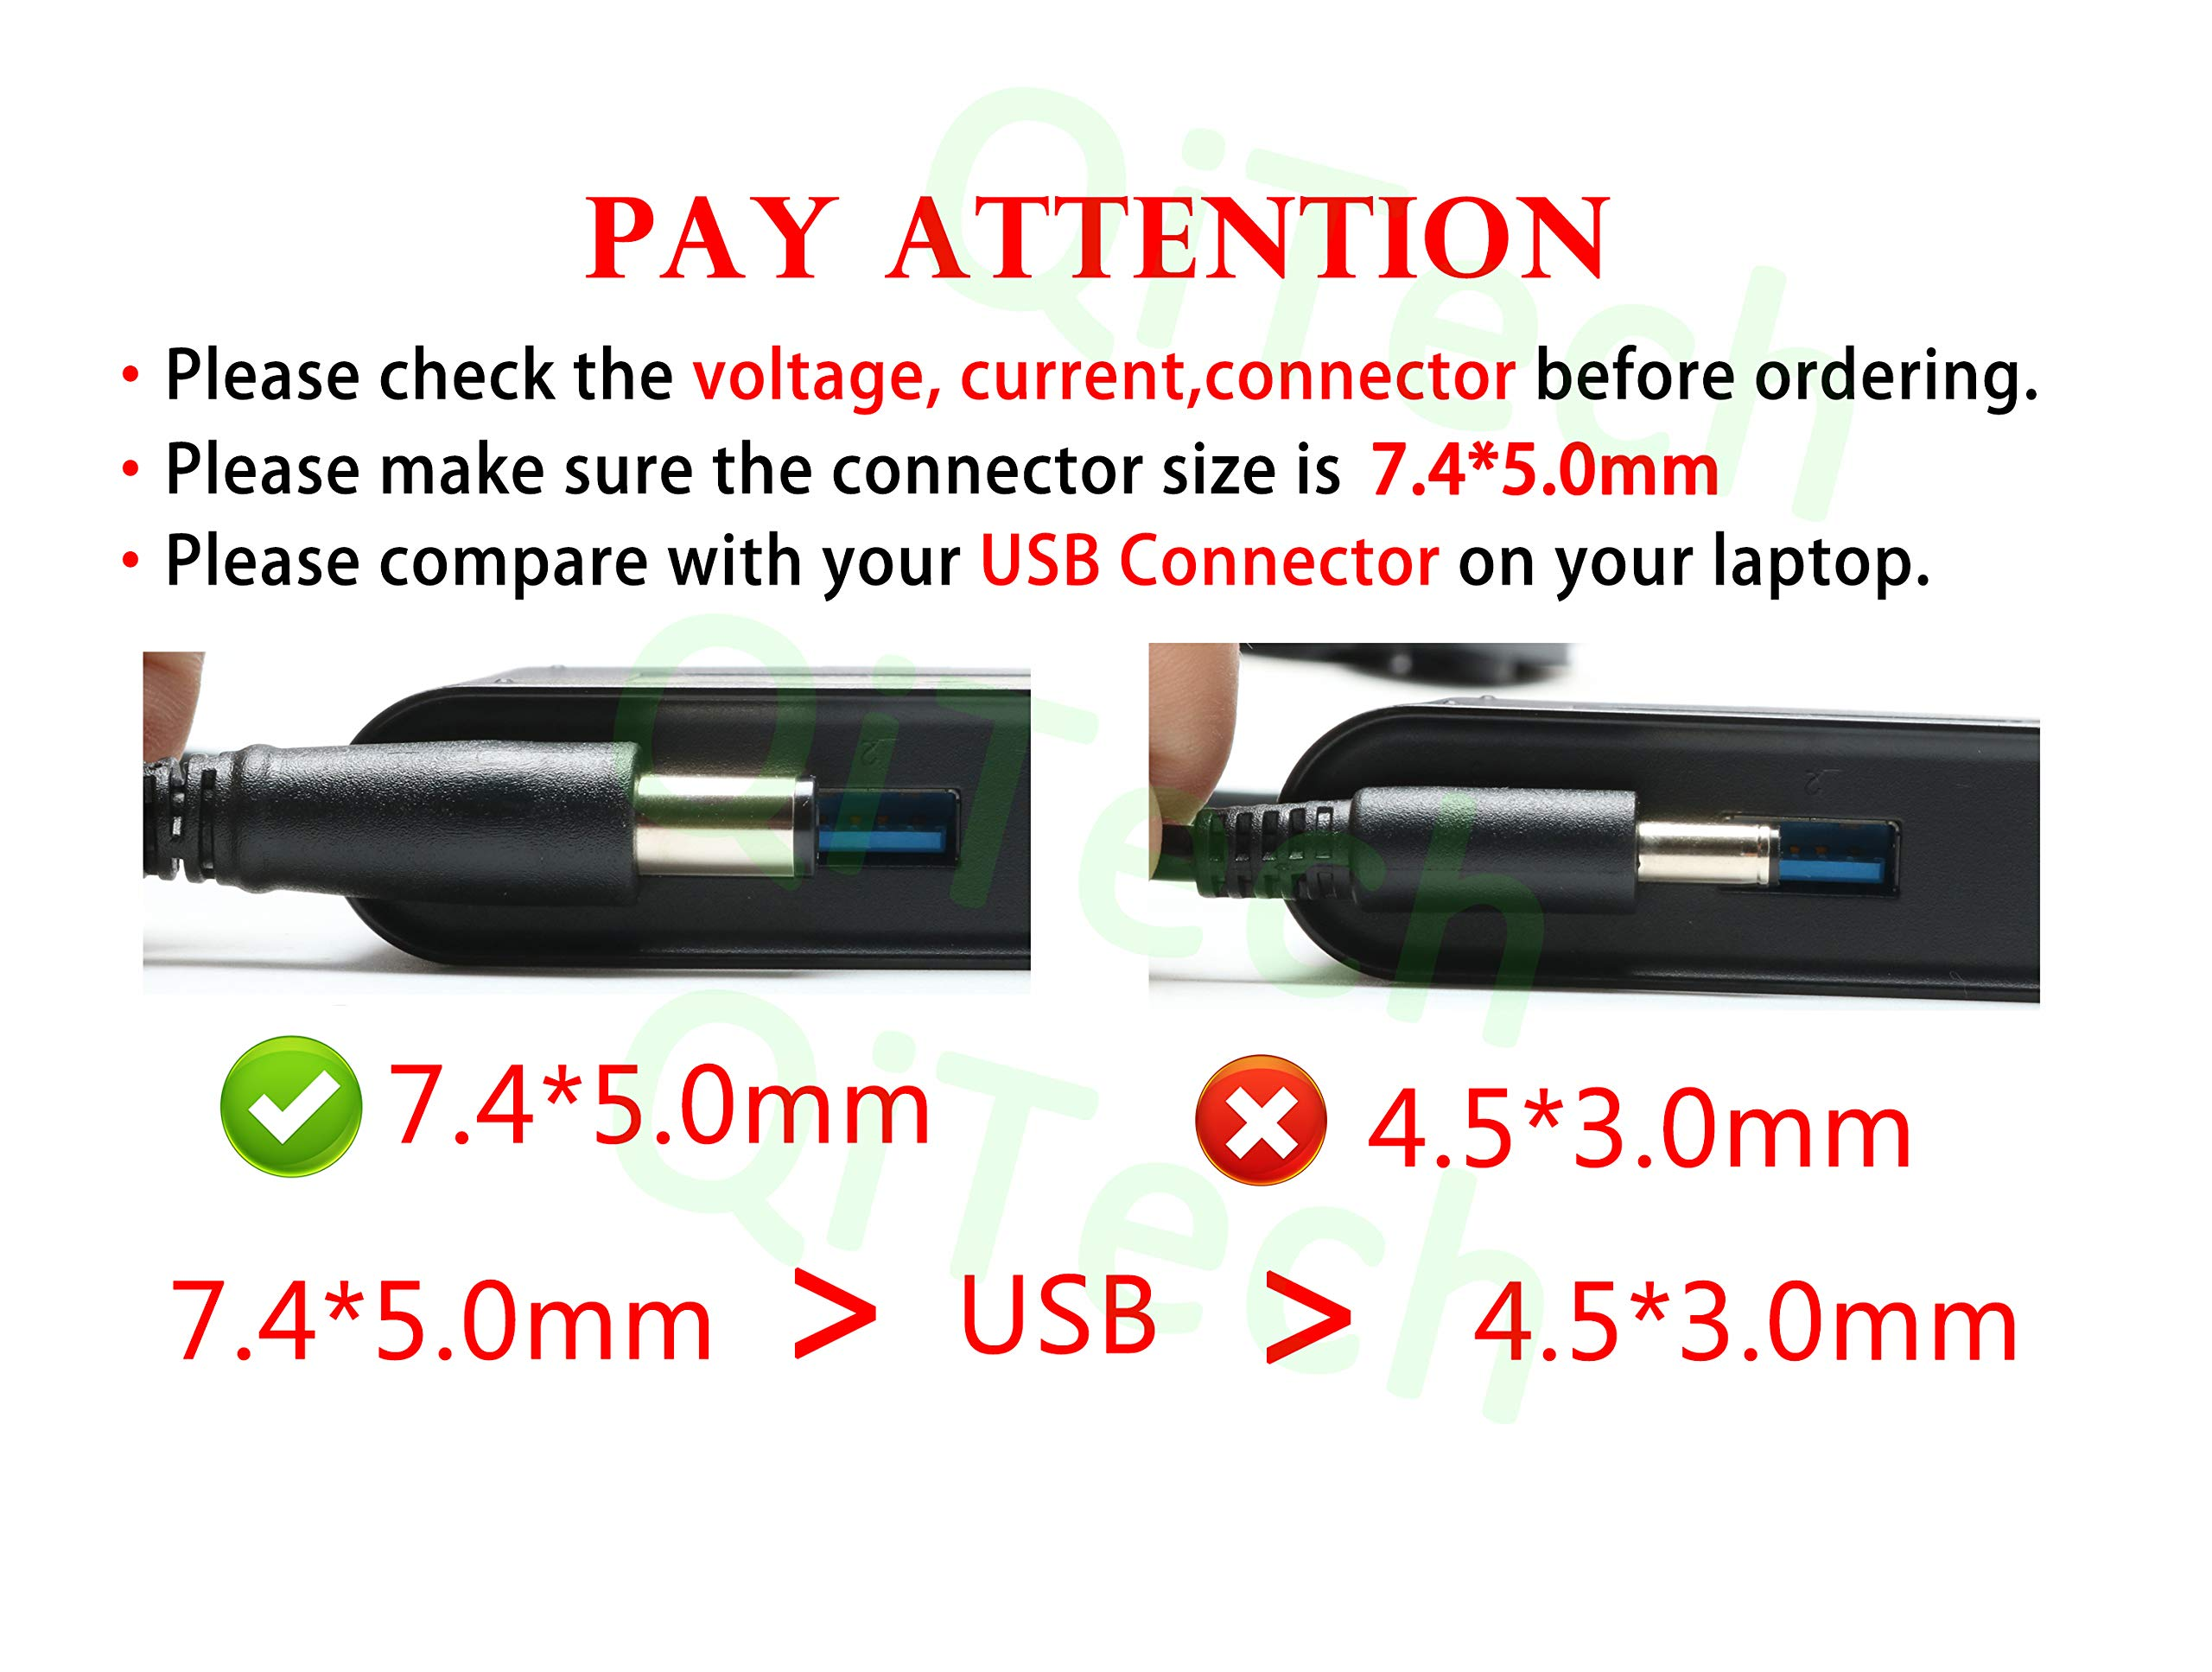 19.5V 3.34A 65W Laptop Charger Replacement for Dell Latitude E5430 E6410 E5440 E5470 E6420 E6430 E6440 E6540 E7250 E7440 E7450 5480 5490 7480 7490 LA65NM130 HA65NM130 AC Adapter Power Supply Cord